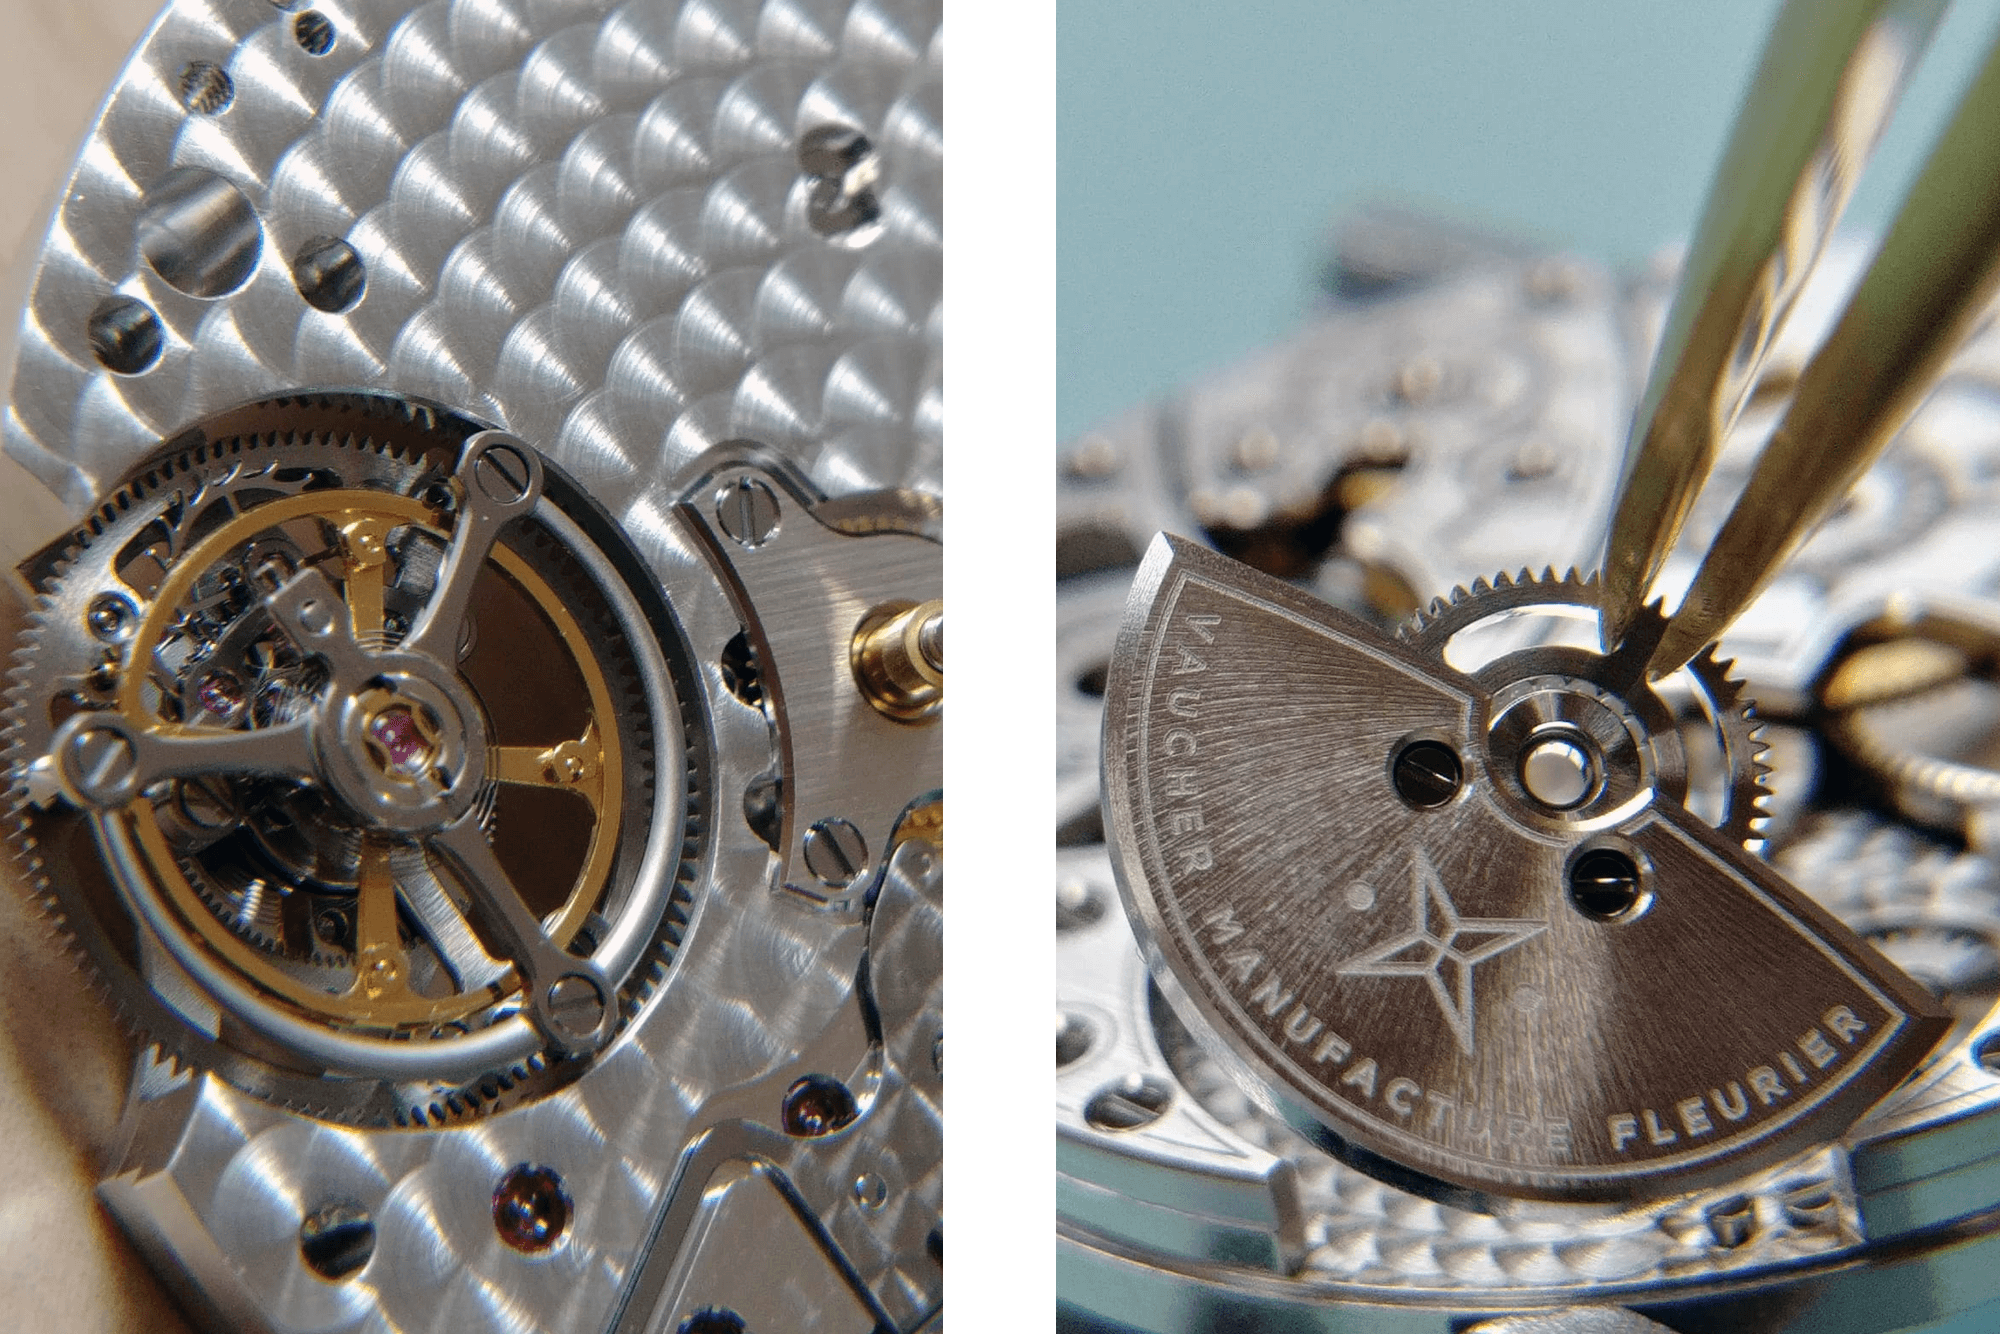 Seed VMF 5440 Extra-Thin Micro-Rotor Flying Tourbillon